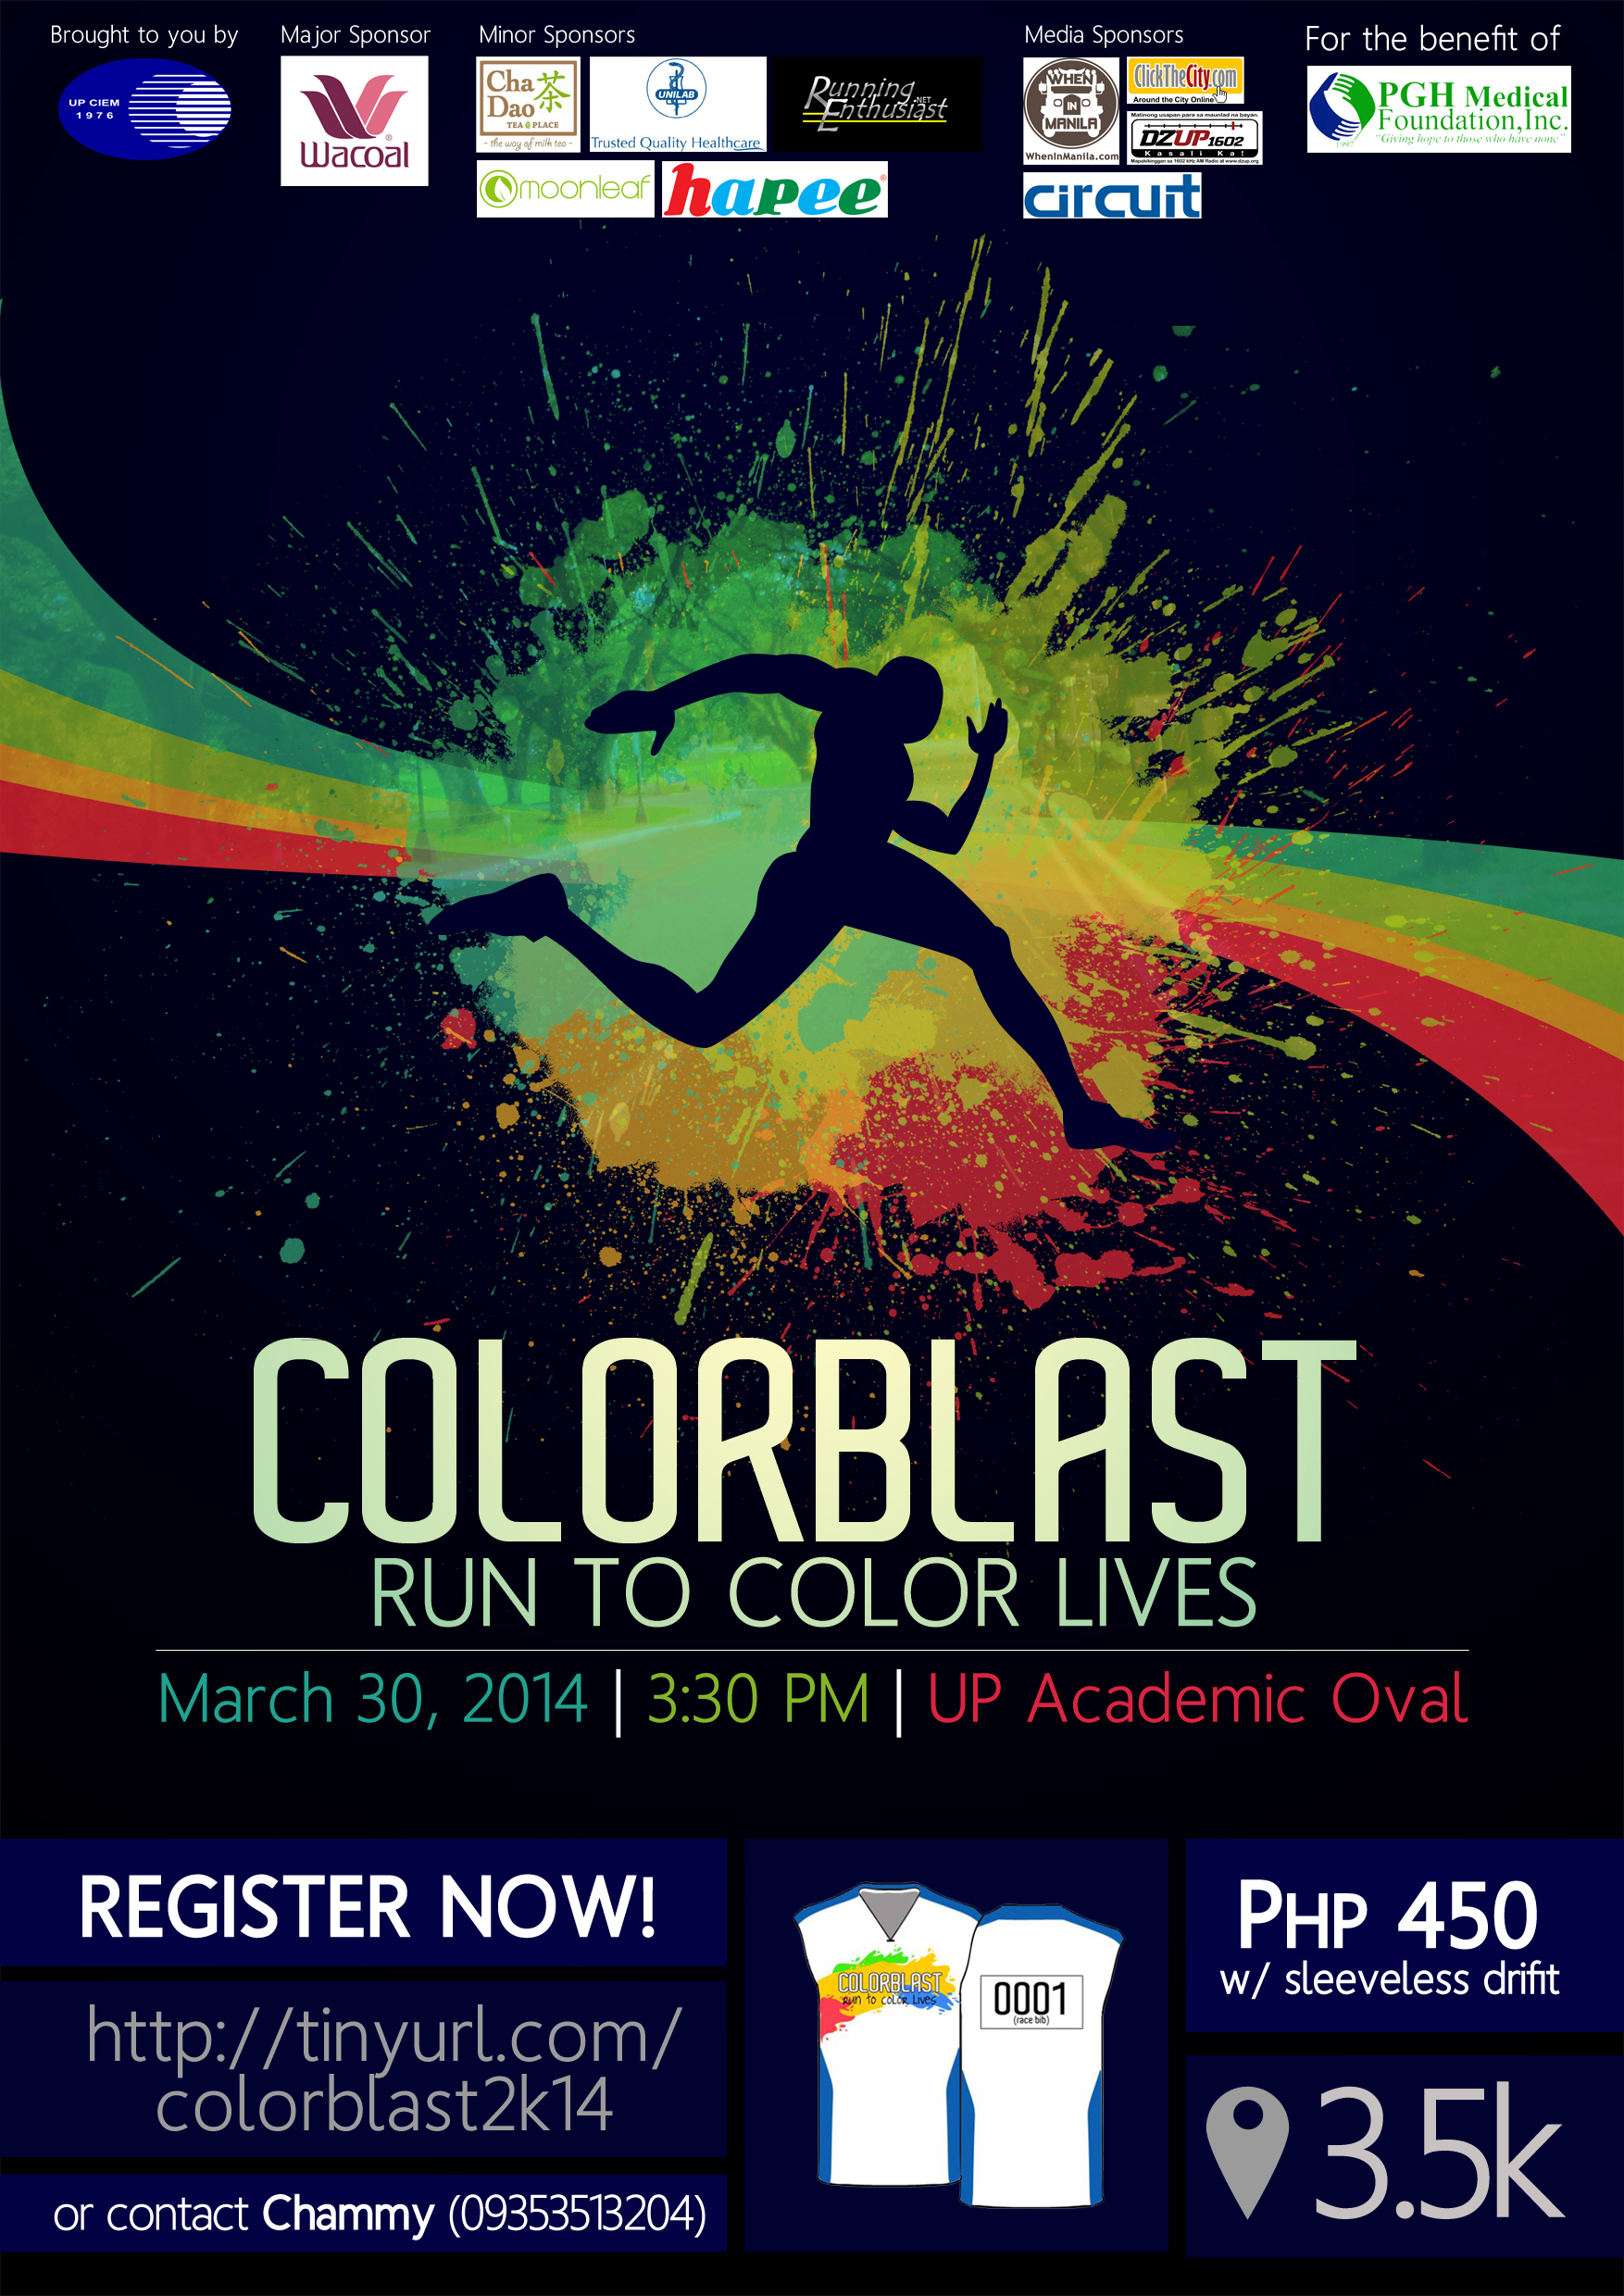 colorblast-summer-run-2014-poster